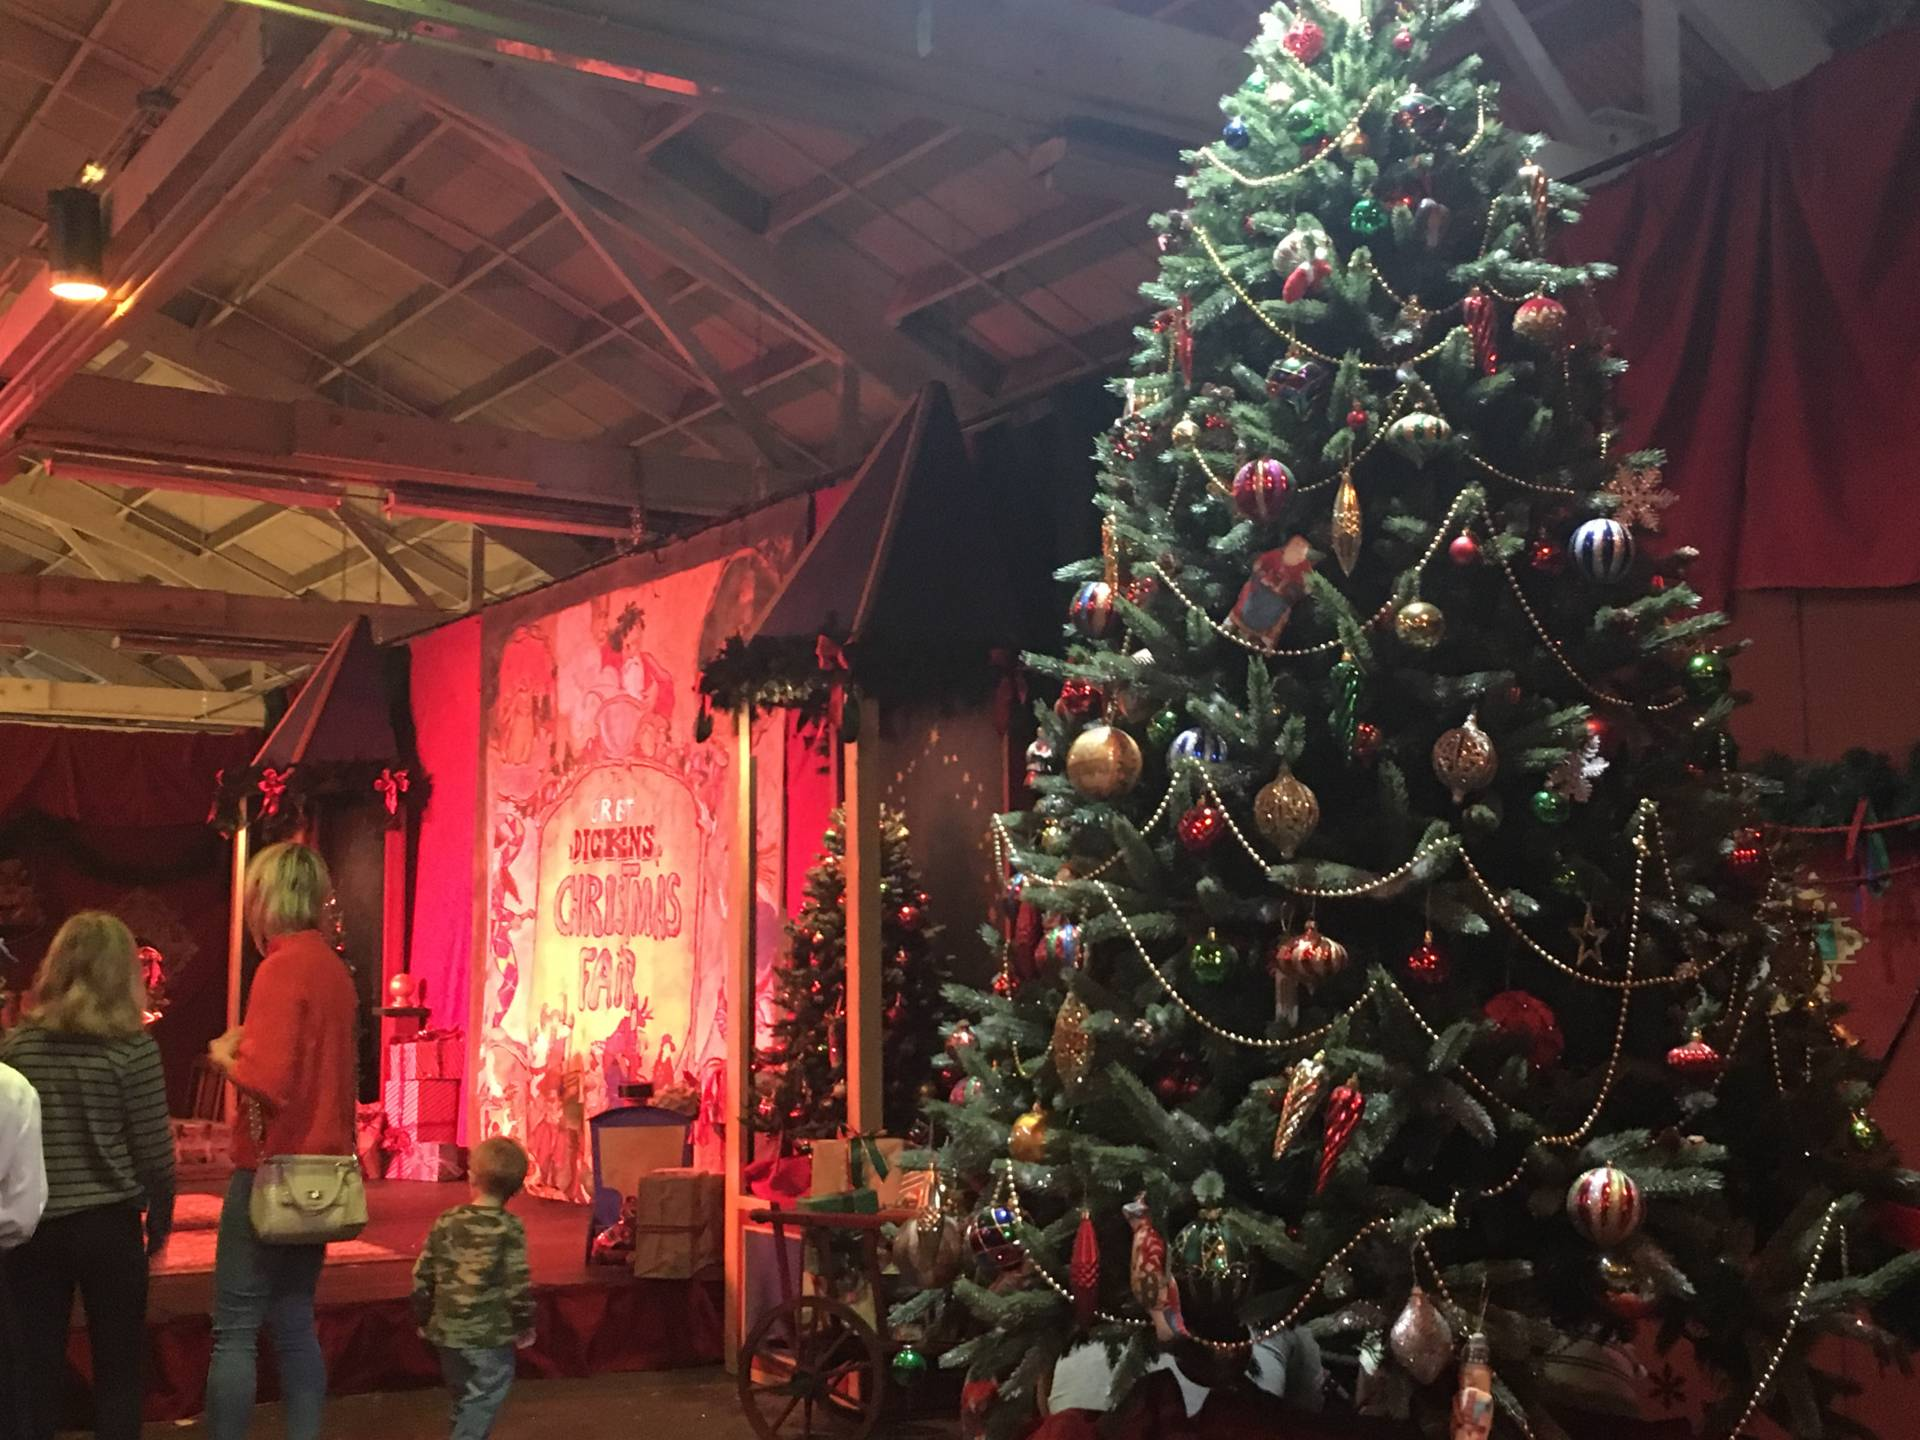 its opening weekend of the great dickens christmas fair an immersive event that brings participants